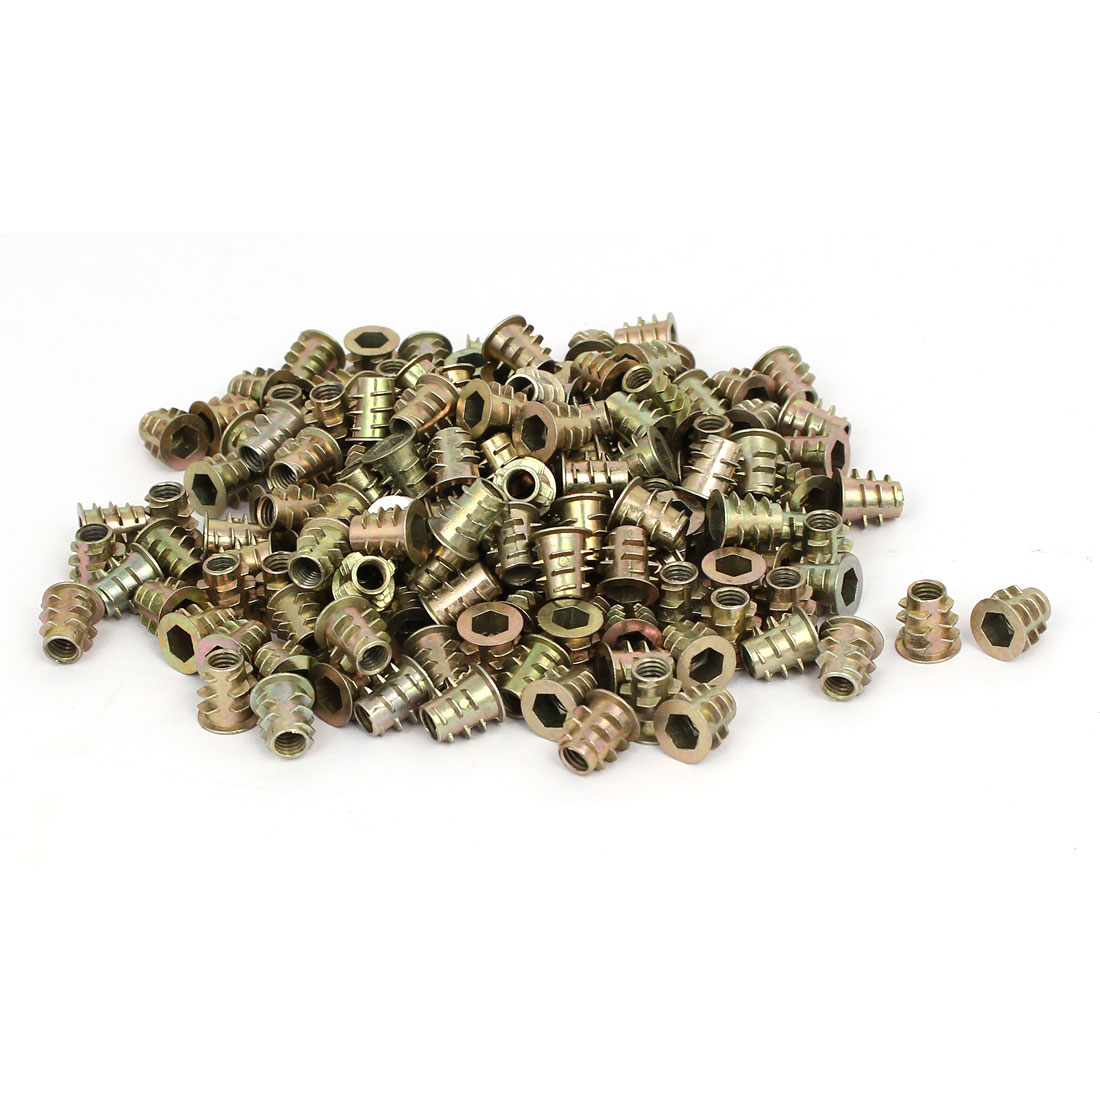 M5 x 10mm Hex Socket Head Insert Screws E-Nuts Furniture Fittings 200pcs